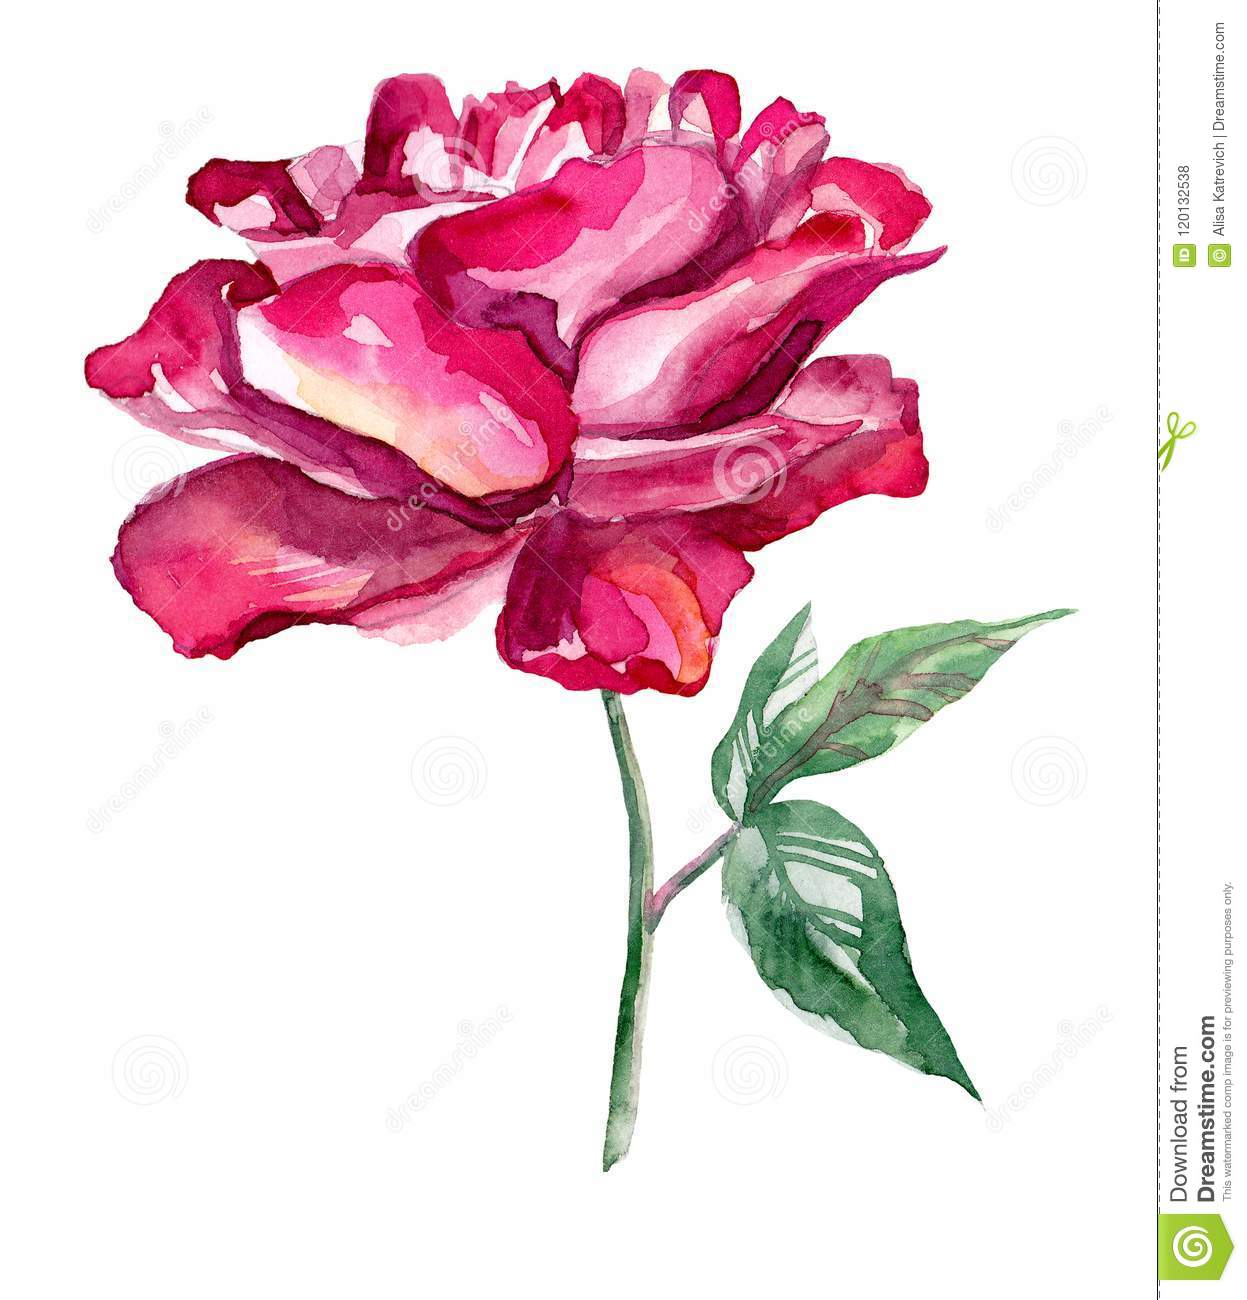 watercolor hand drawn rose on white background stock illustration